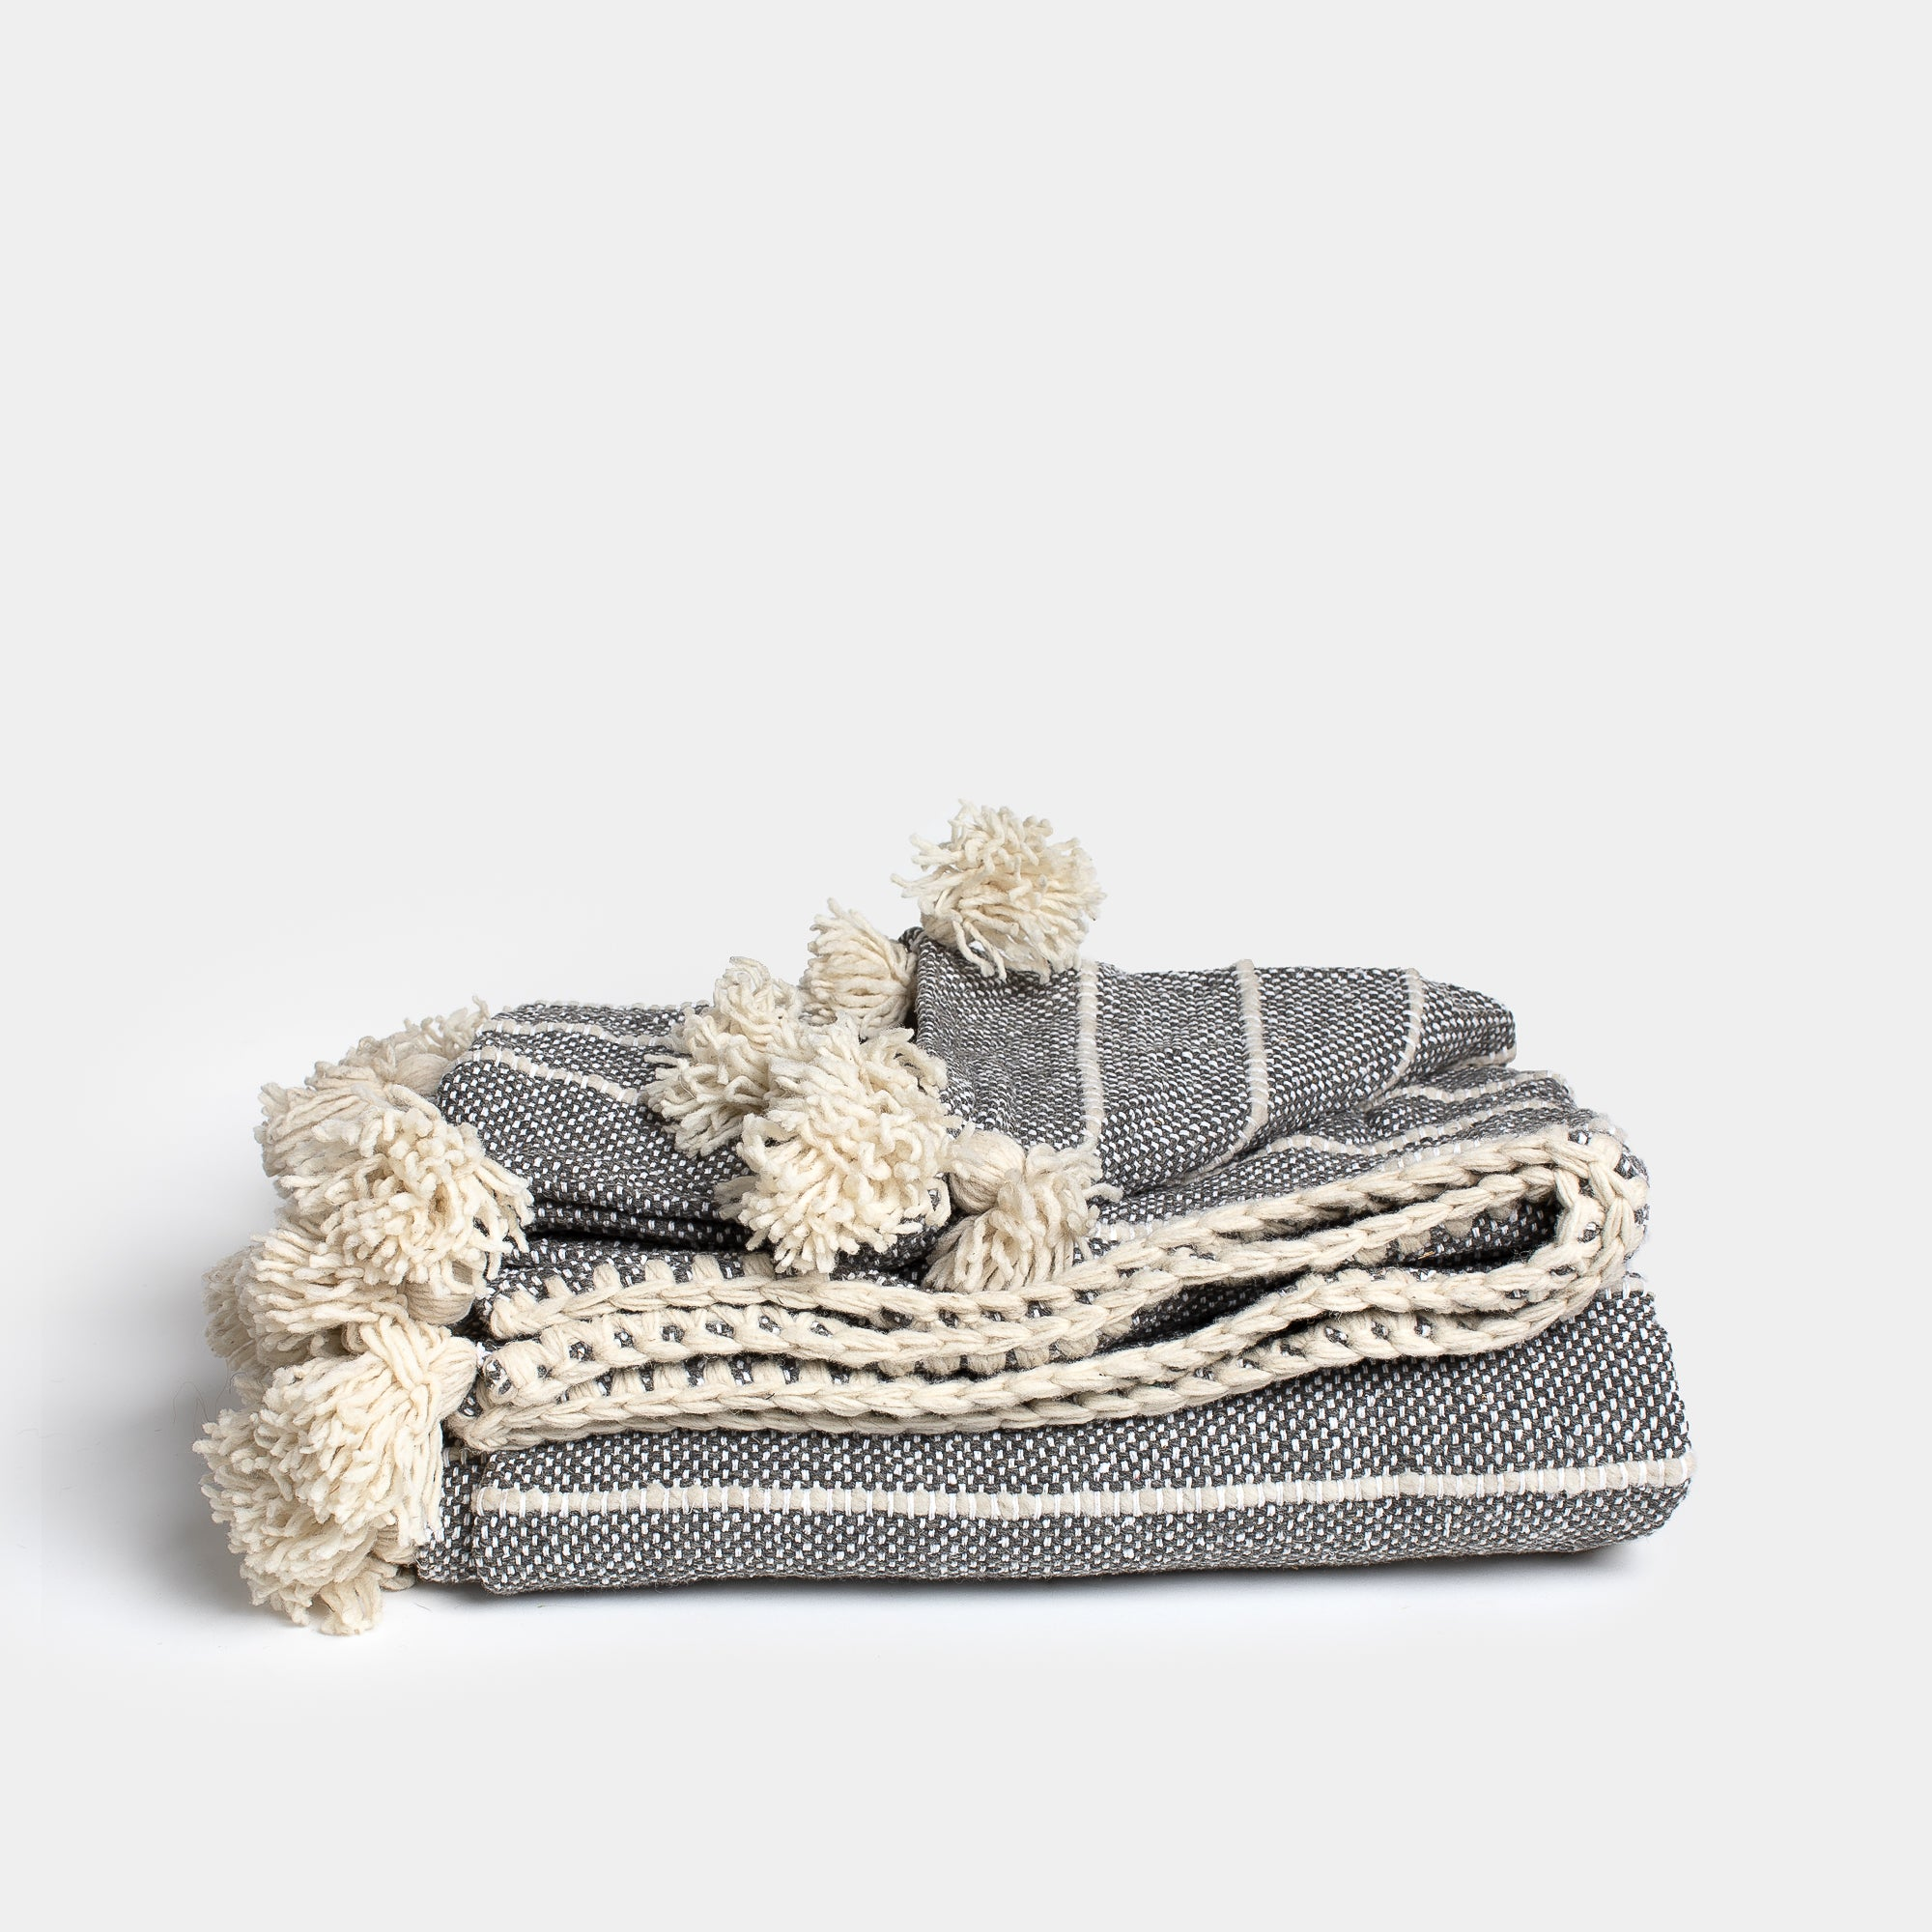 Wool Blanket Grey & White Stripes With Tassels - Blankets – Shoppe Amber Interiors